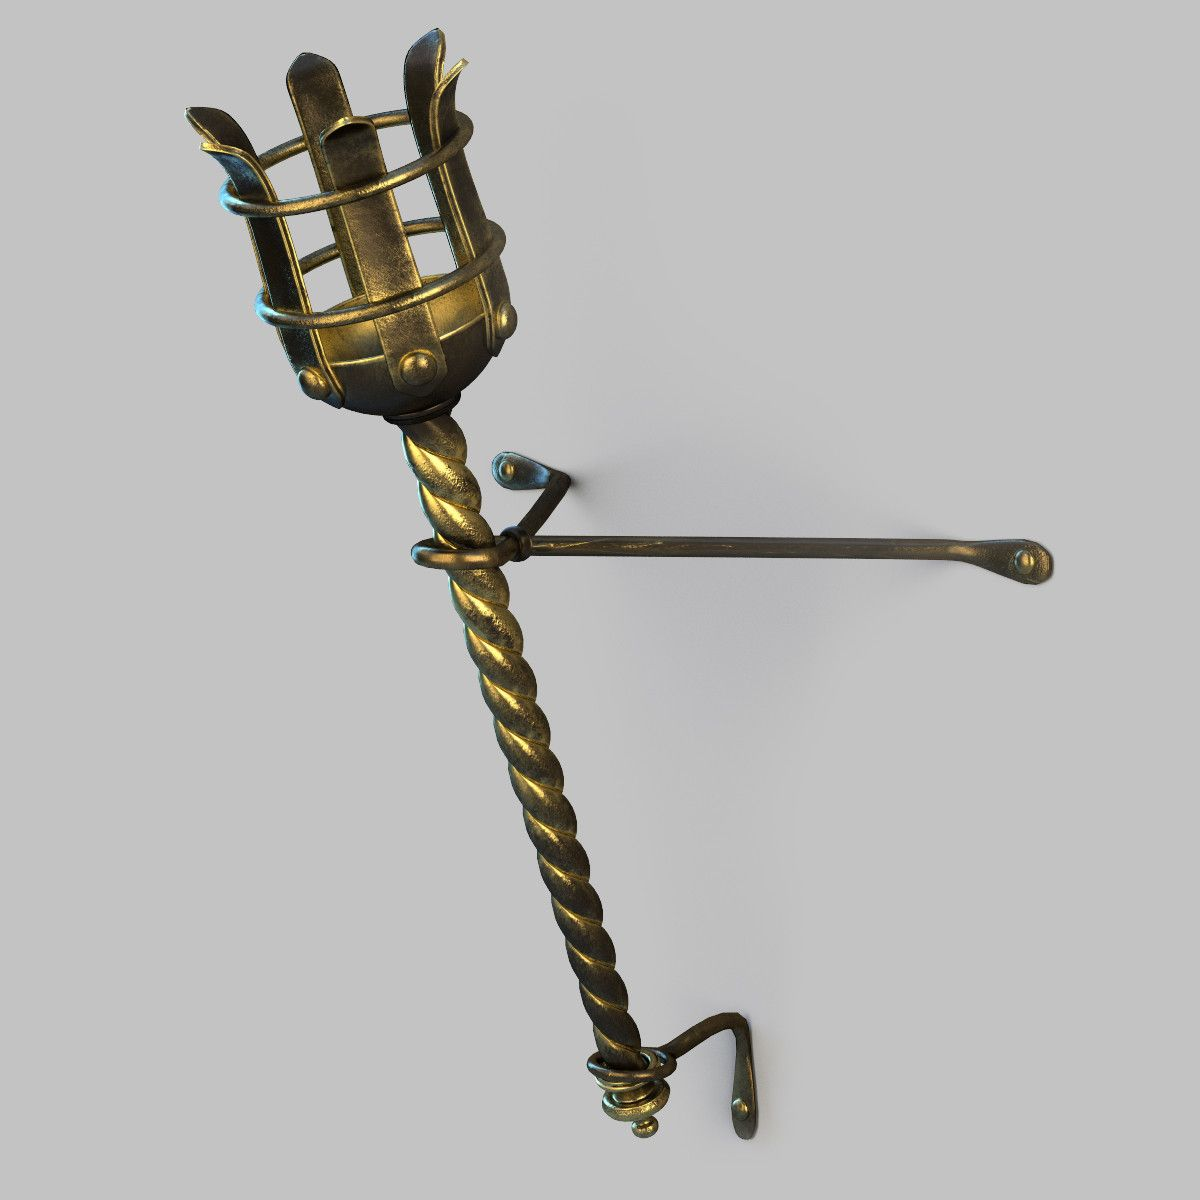 3D Model Of Hand Torch